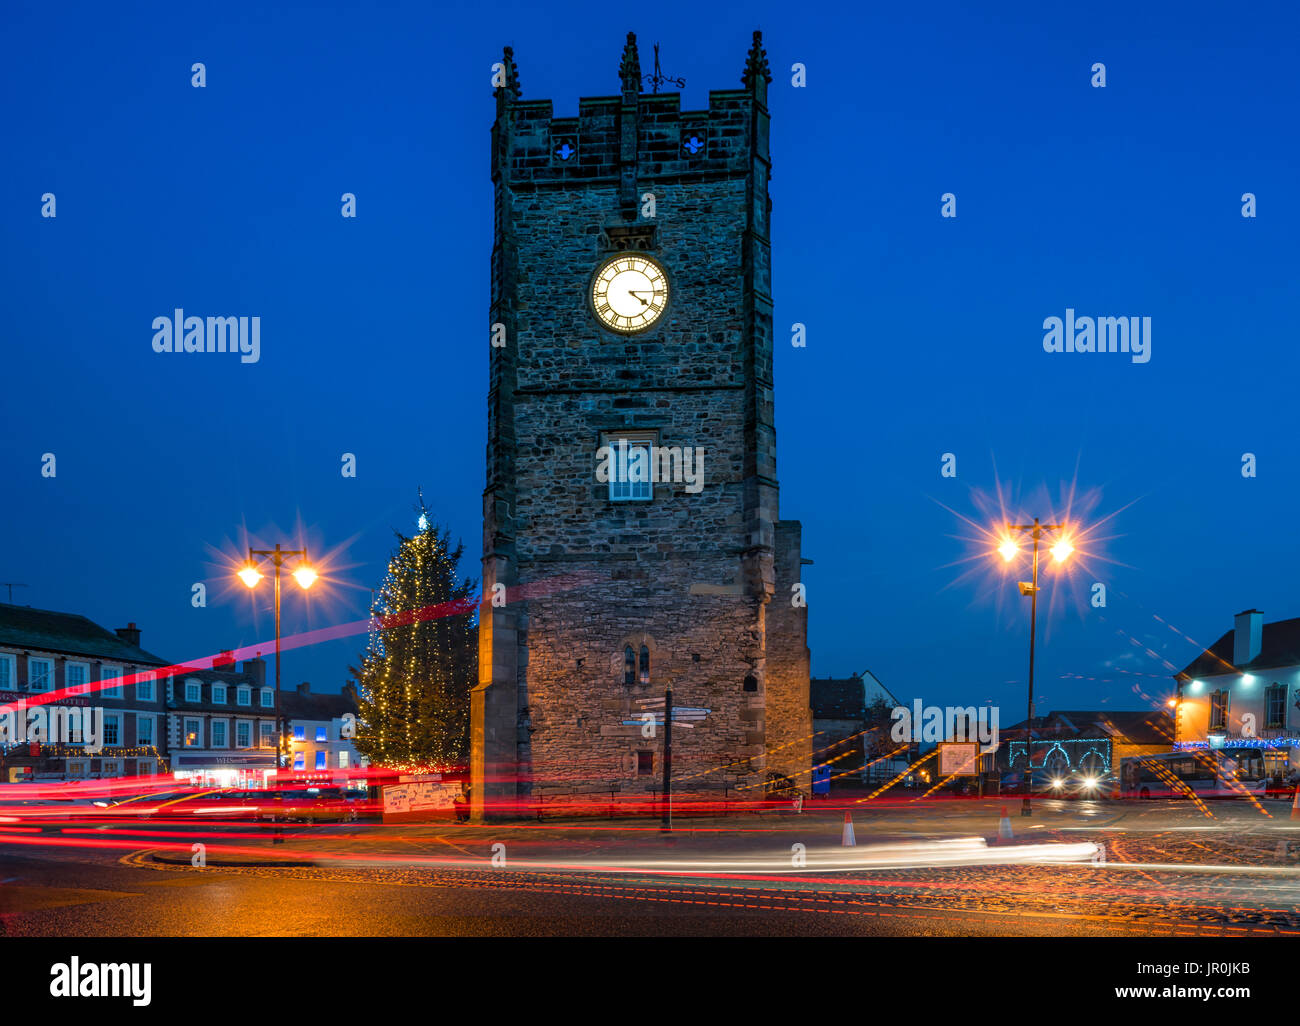 The Clock In A Tower And Lamp Posts Glow With Illumination At Dusk, With Light Trails On The Street; Richmond, Yorkshire, England - Stock Image